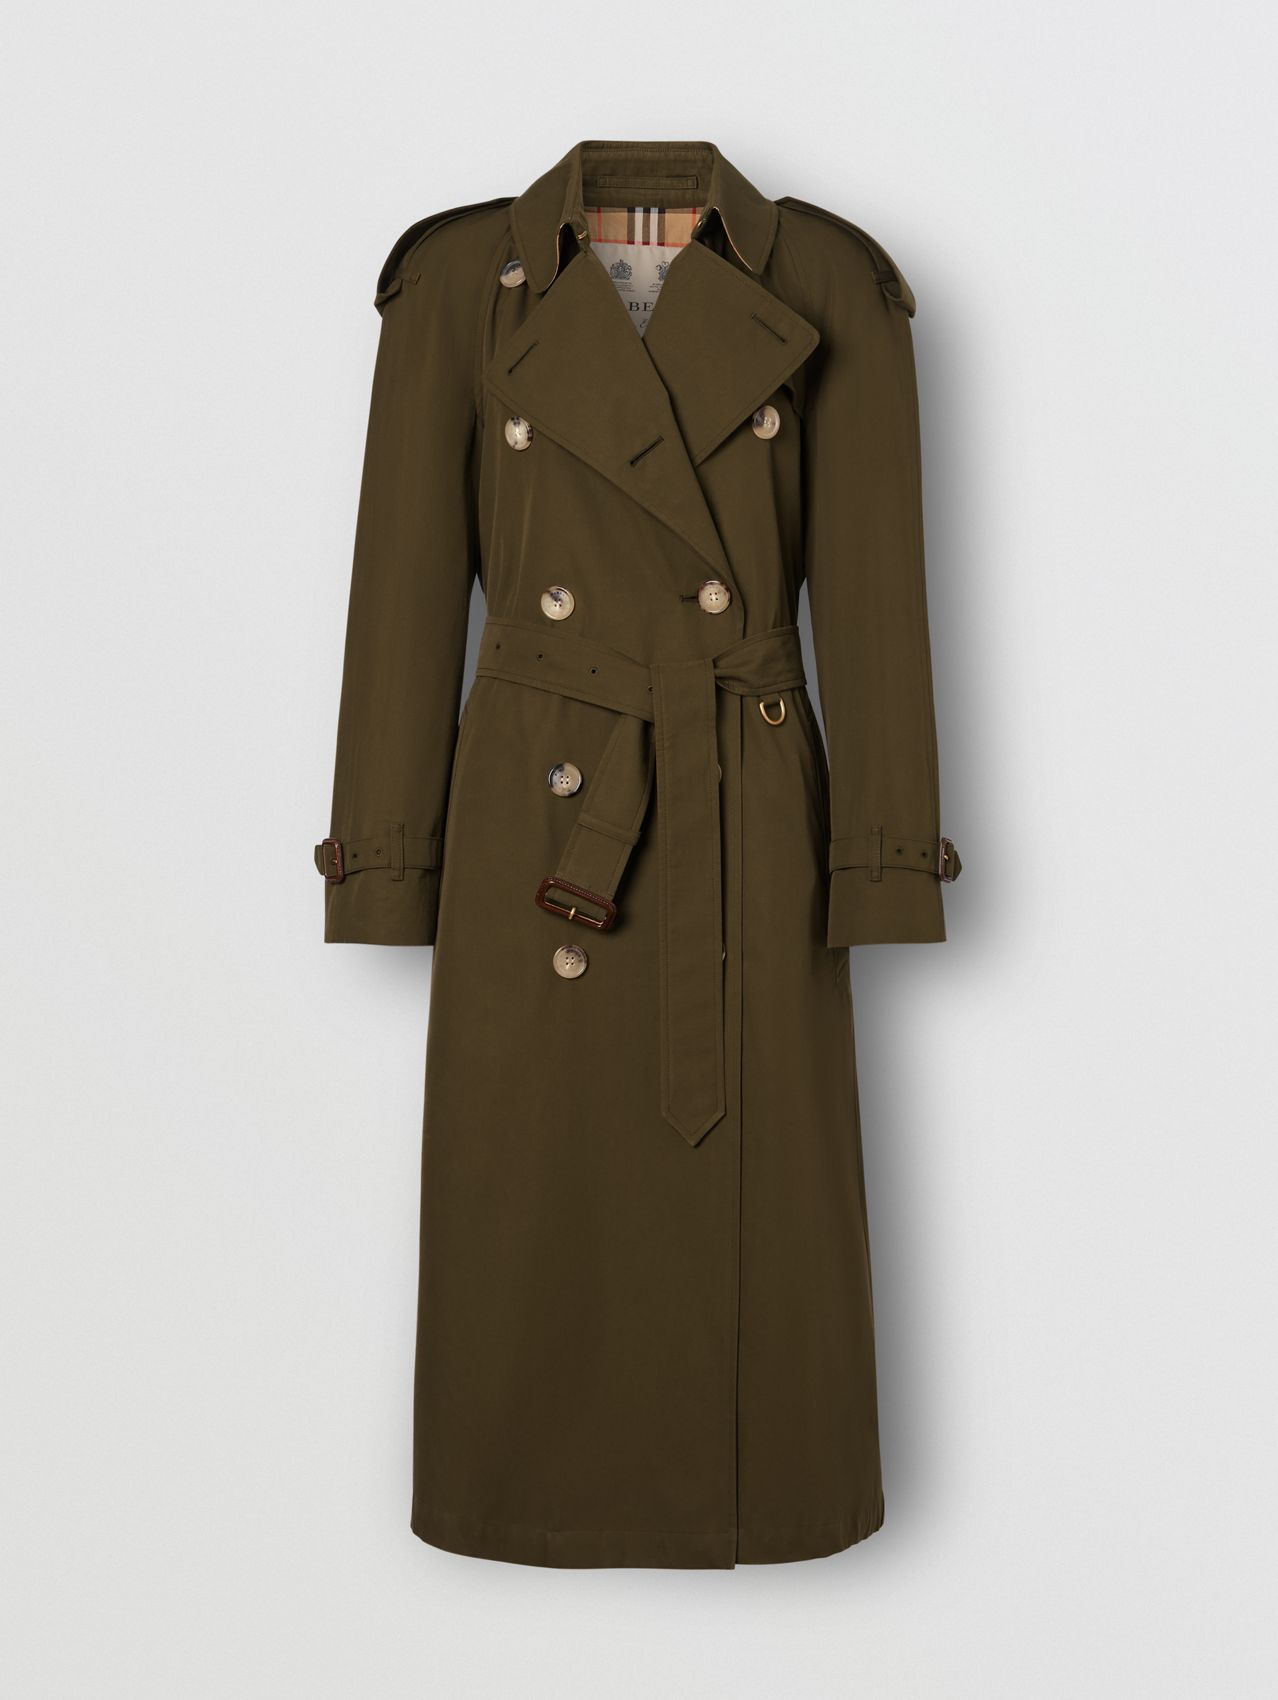 The Long Westminster Heritage Trench Coat in Dark Military Khaki